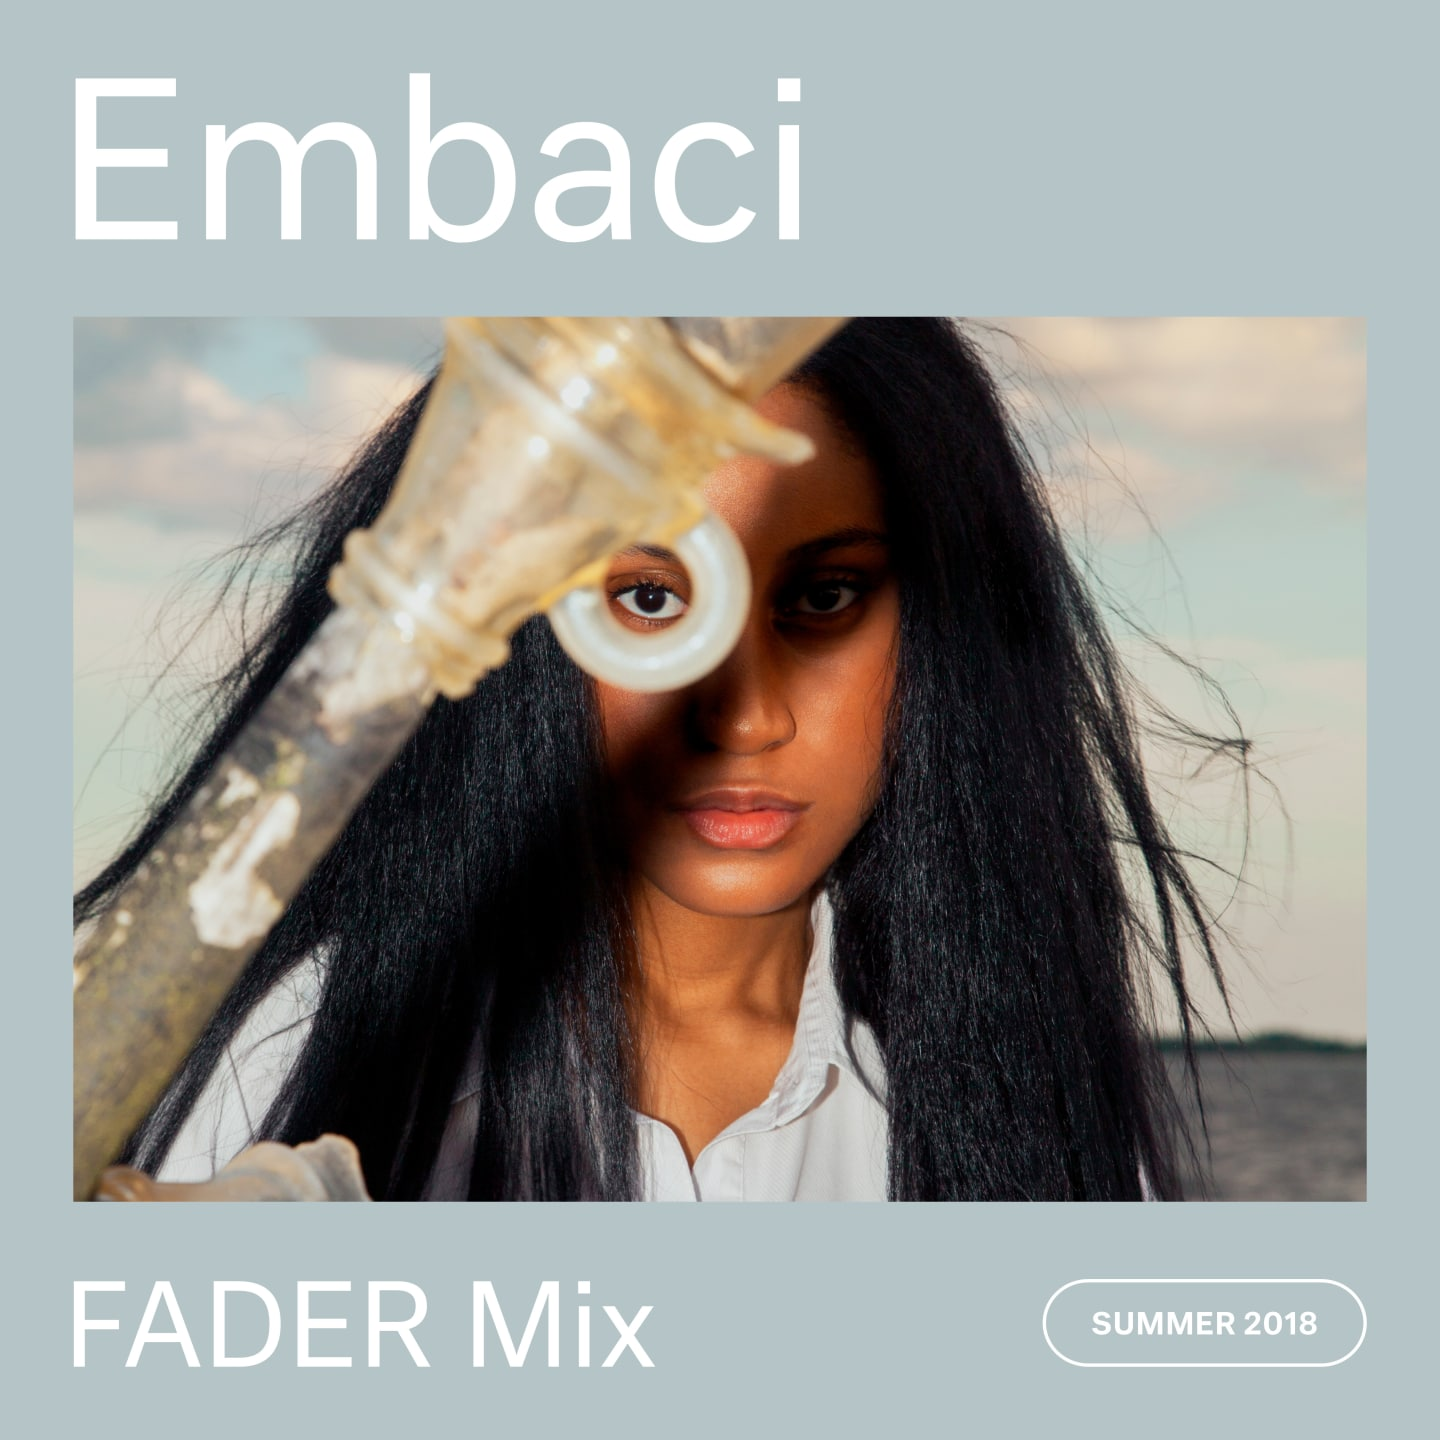 Listen to a new FADER Mix by Embaci